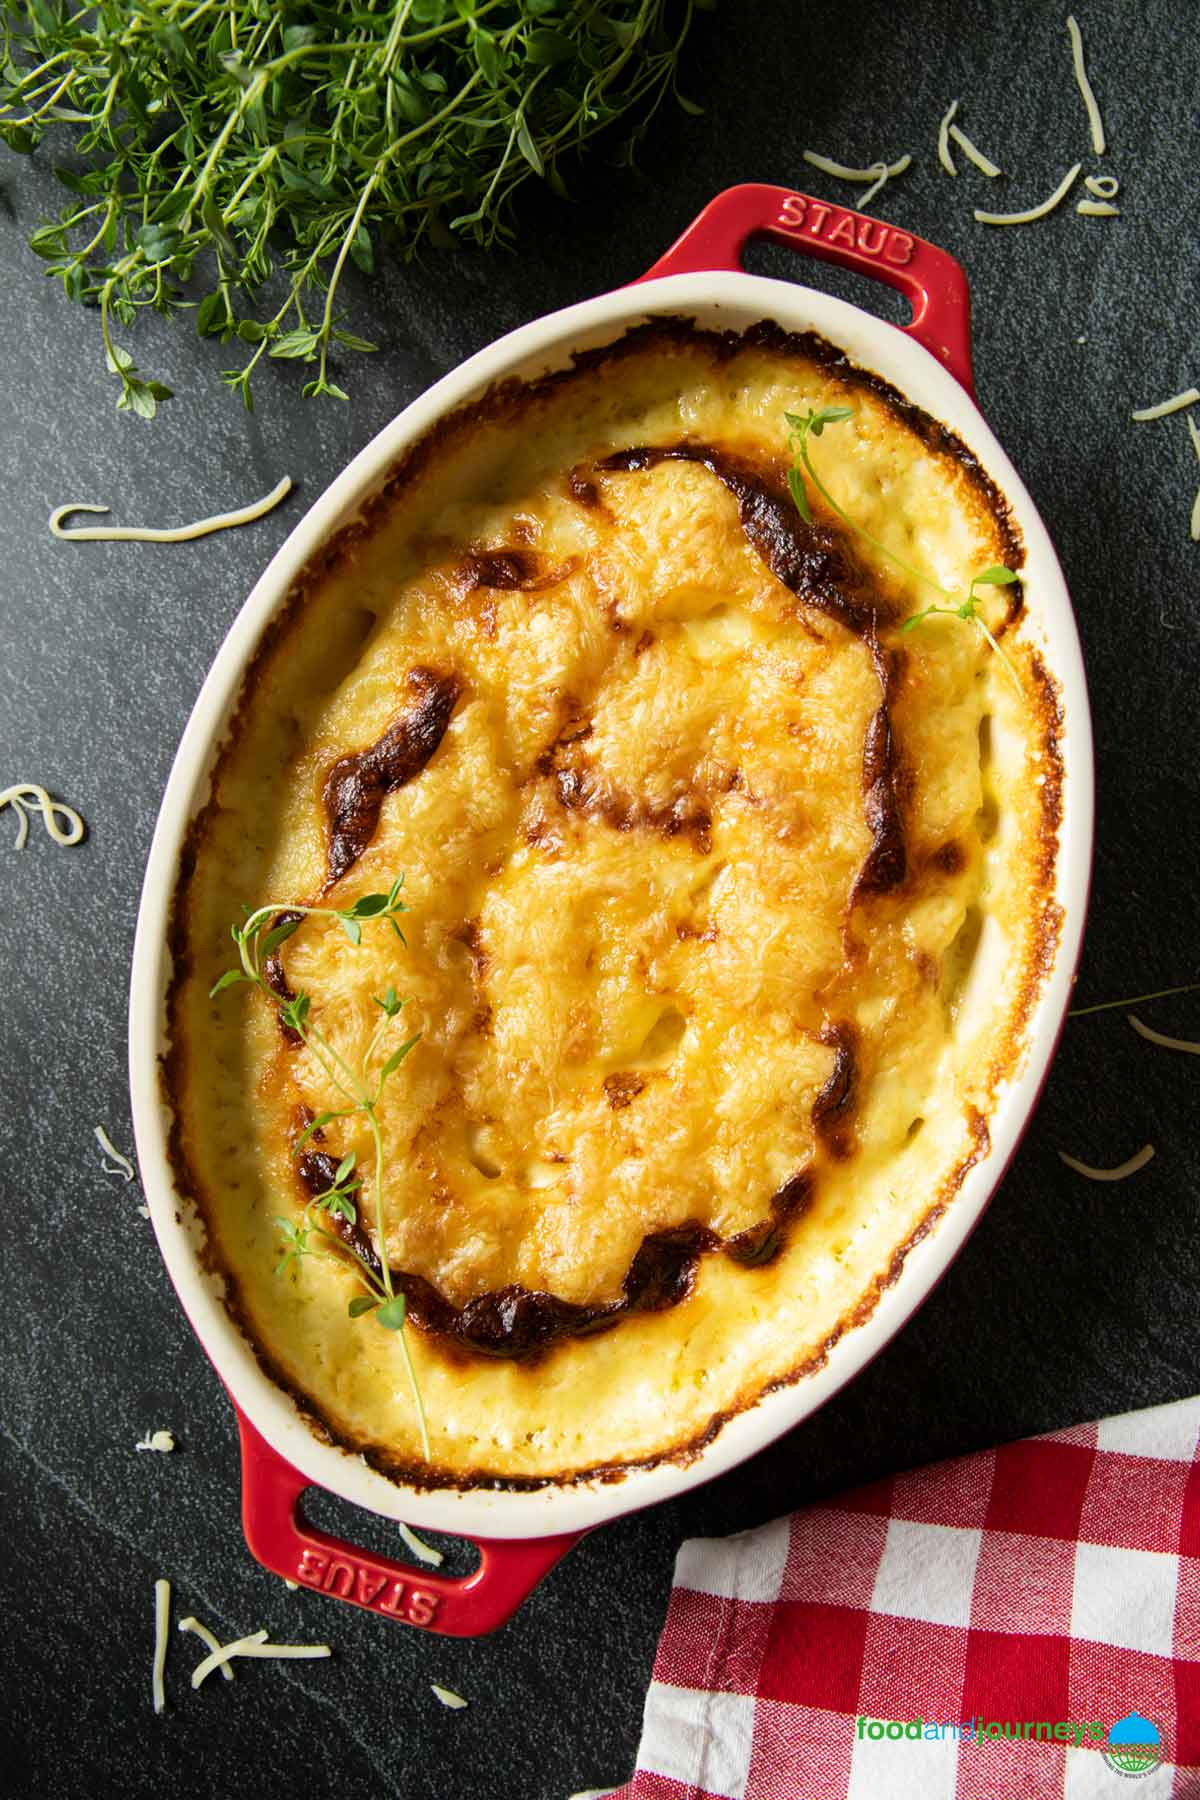 An overhead shot of German Potato Gratin, fresh out of the oven, with some fresh thyme on the background.